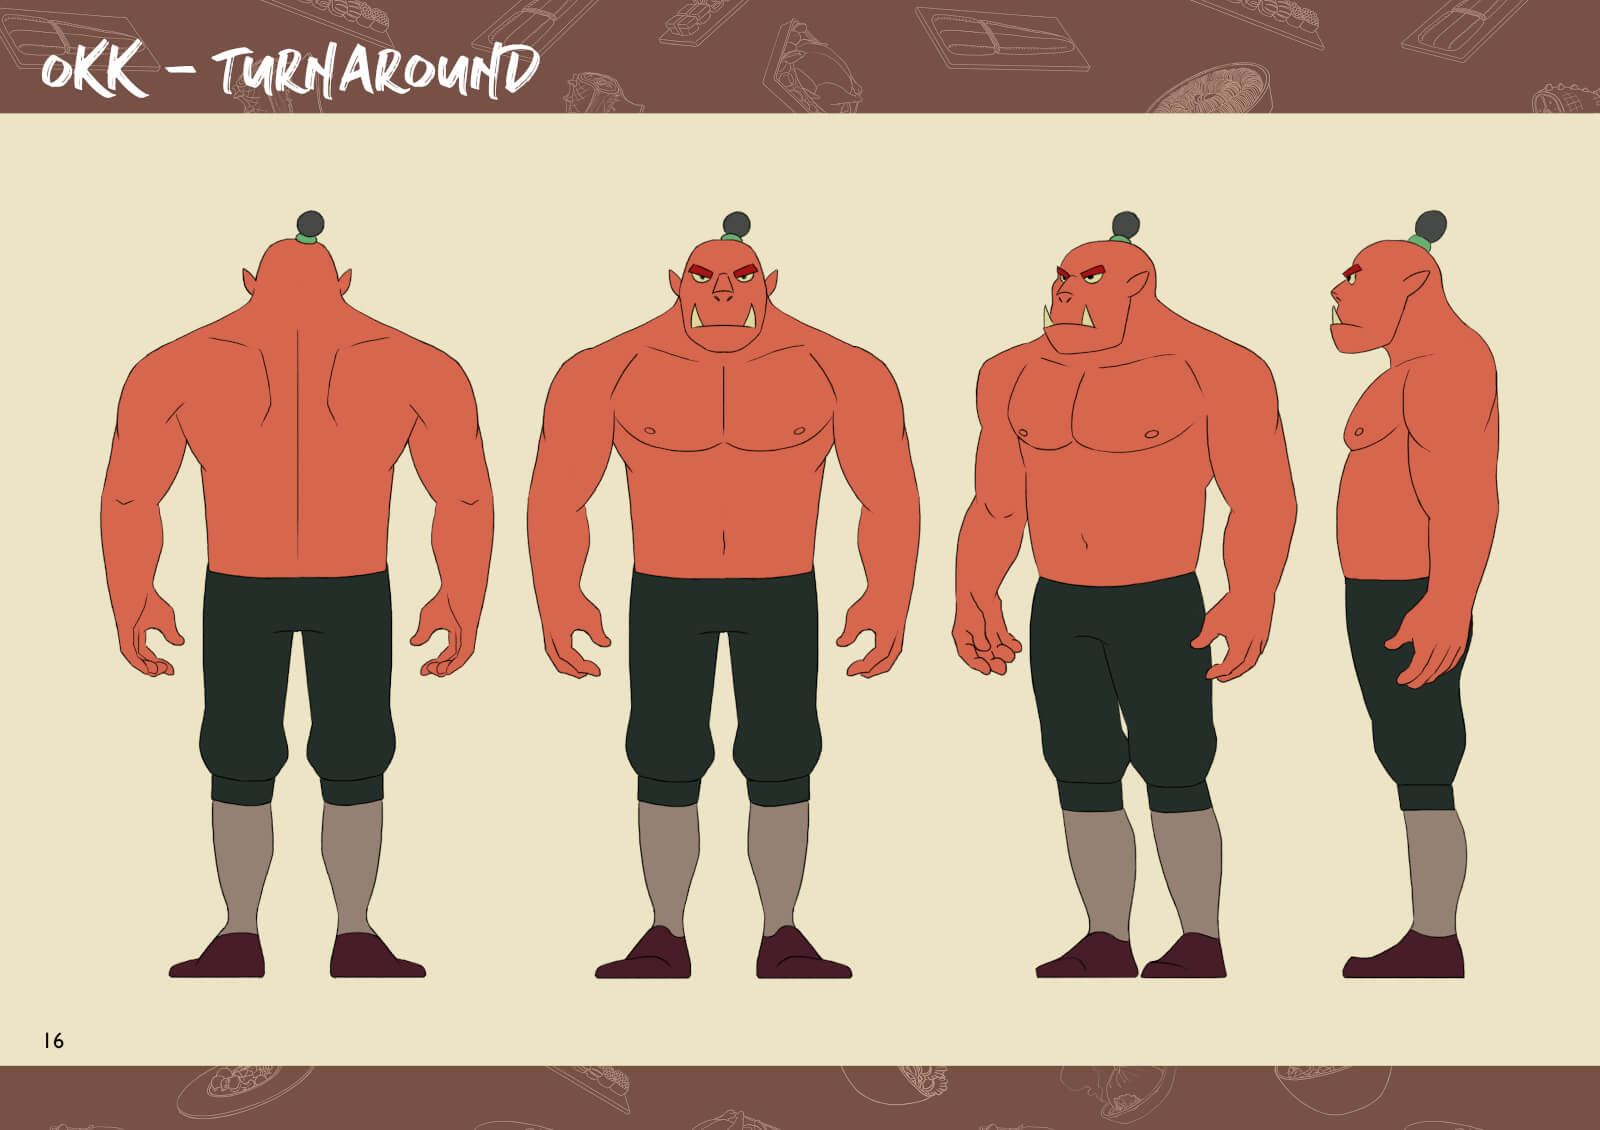 Orc character from multiple angles